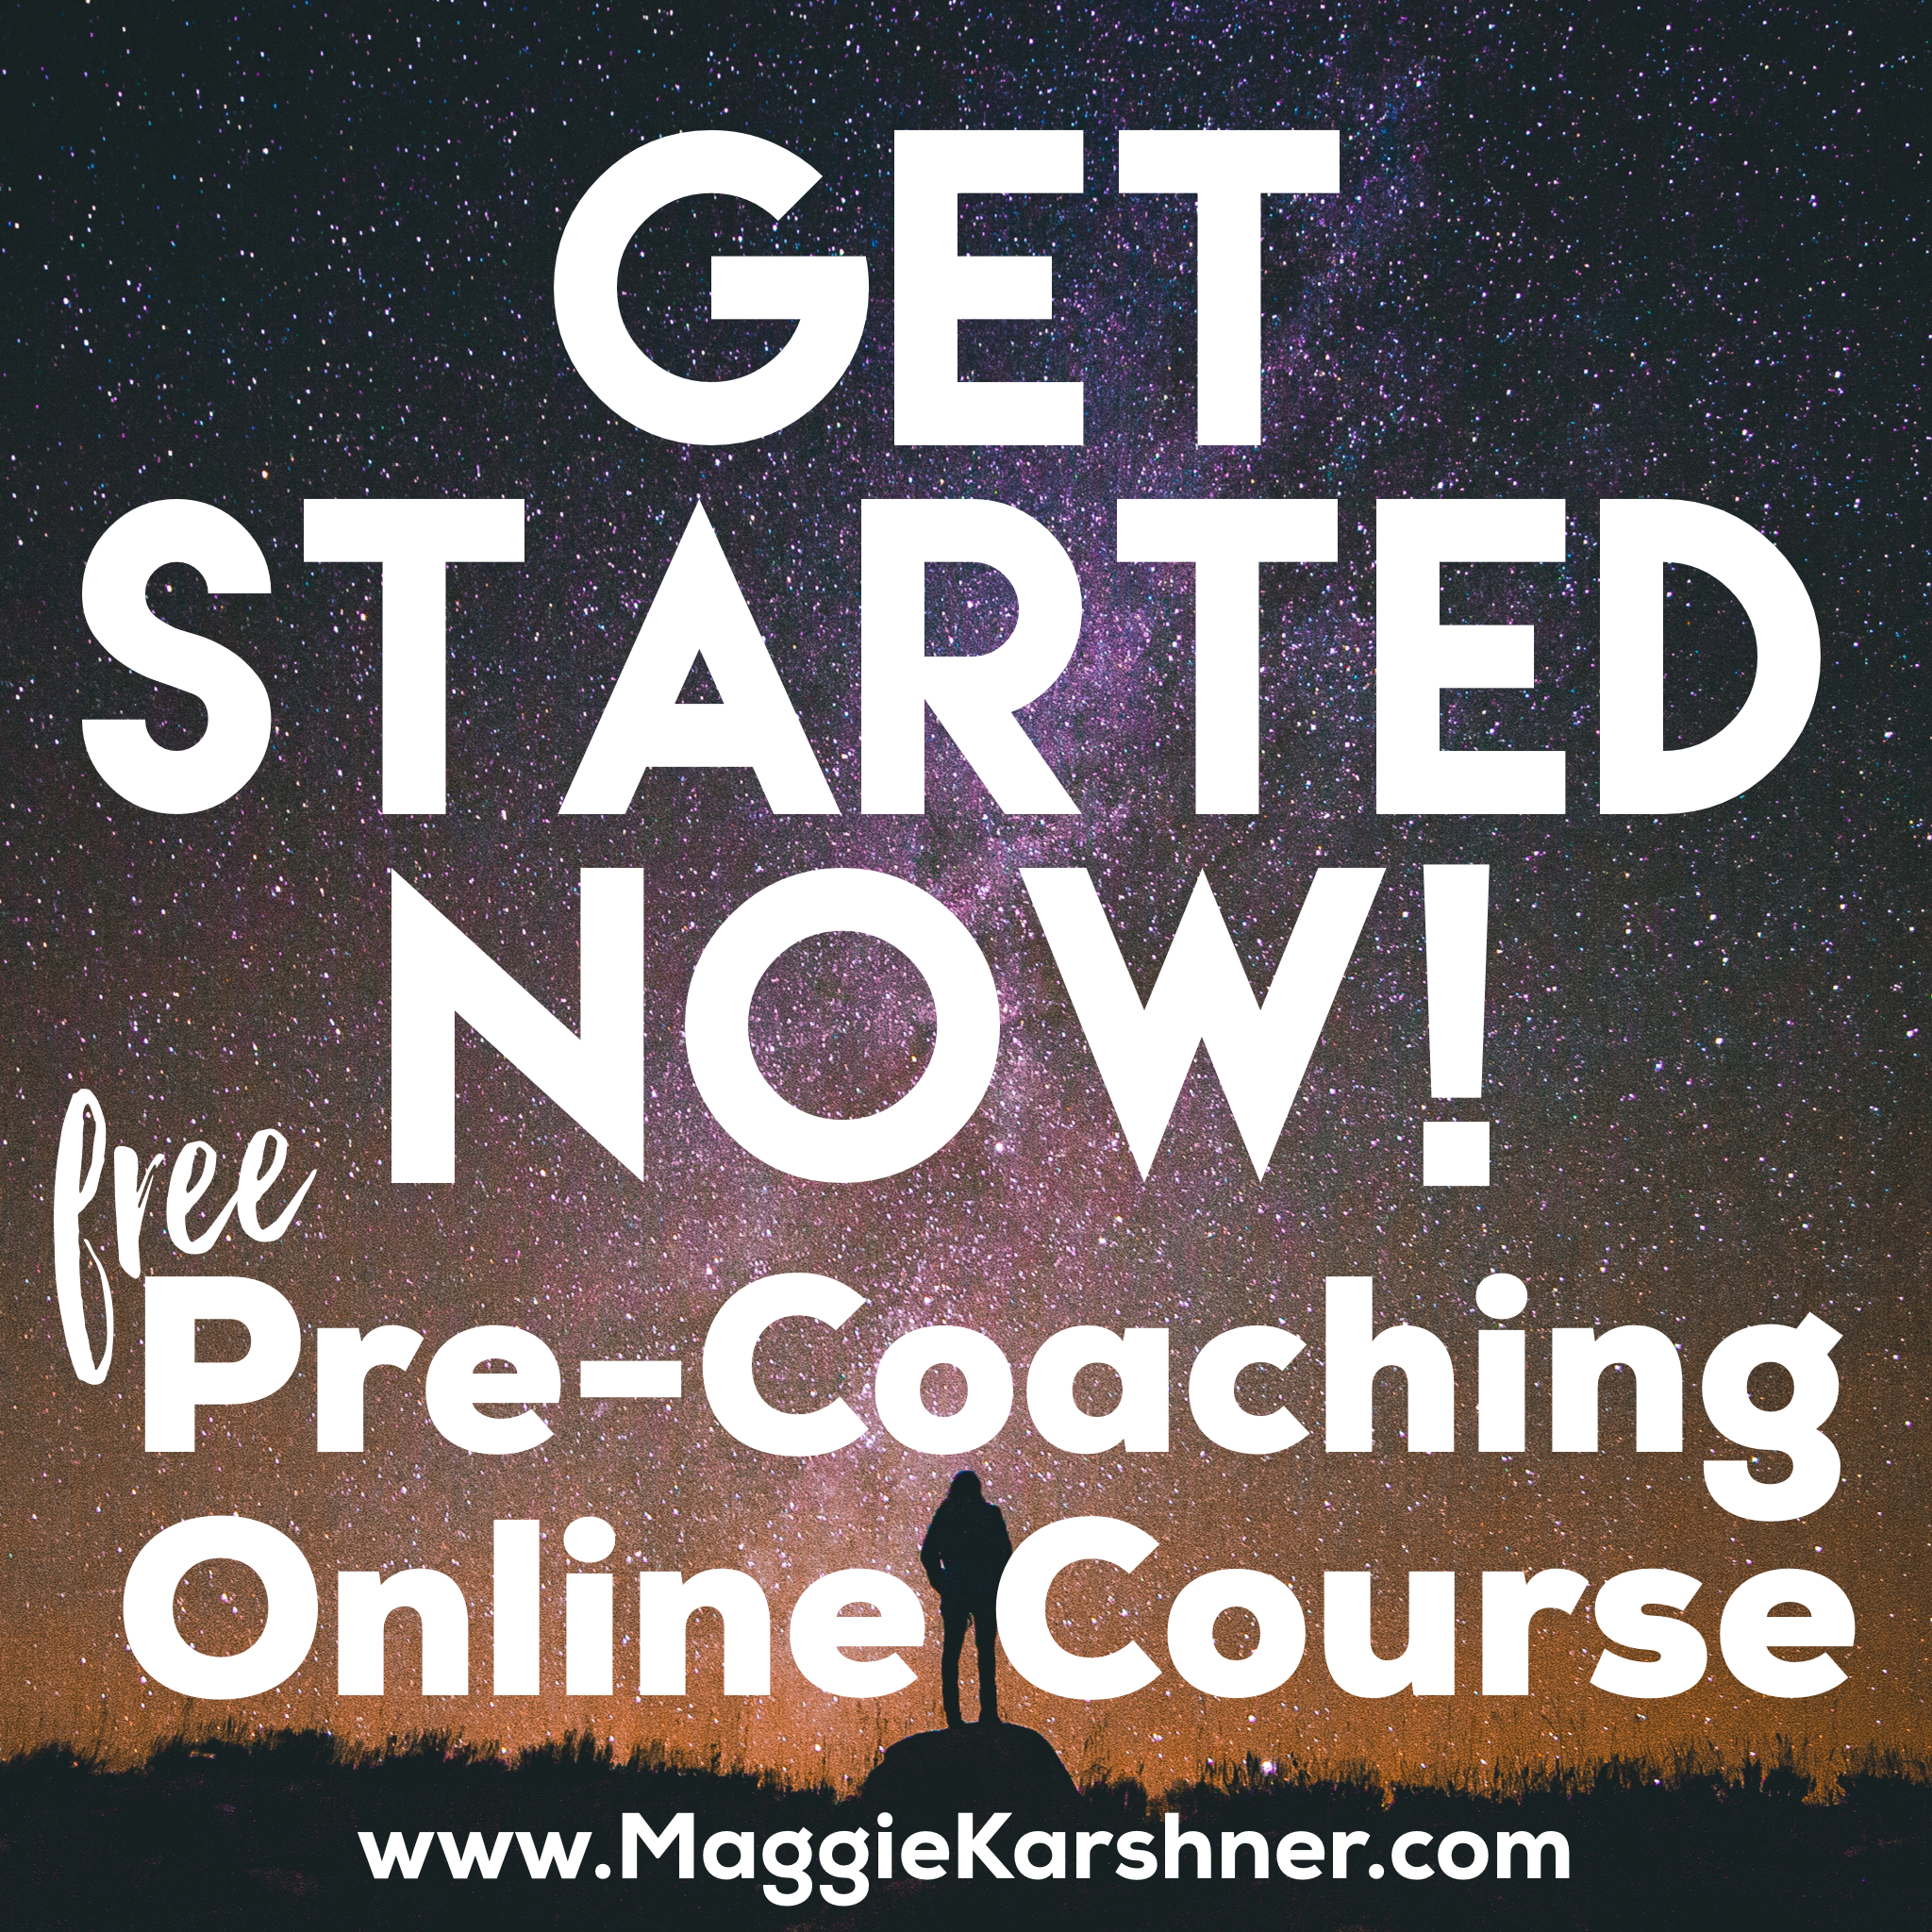 get-started-now-free-business-coaching-online-course-graphic.png